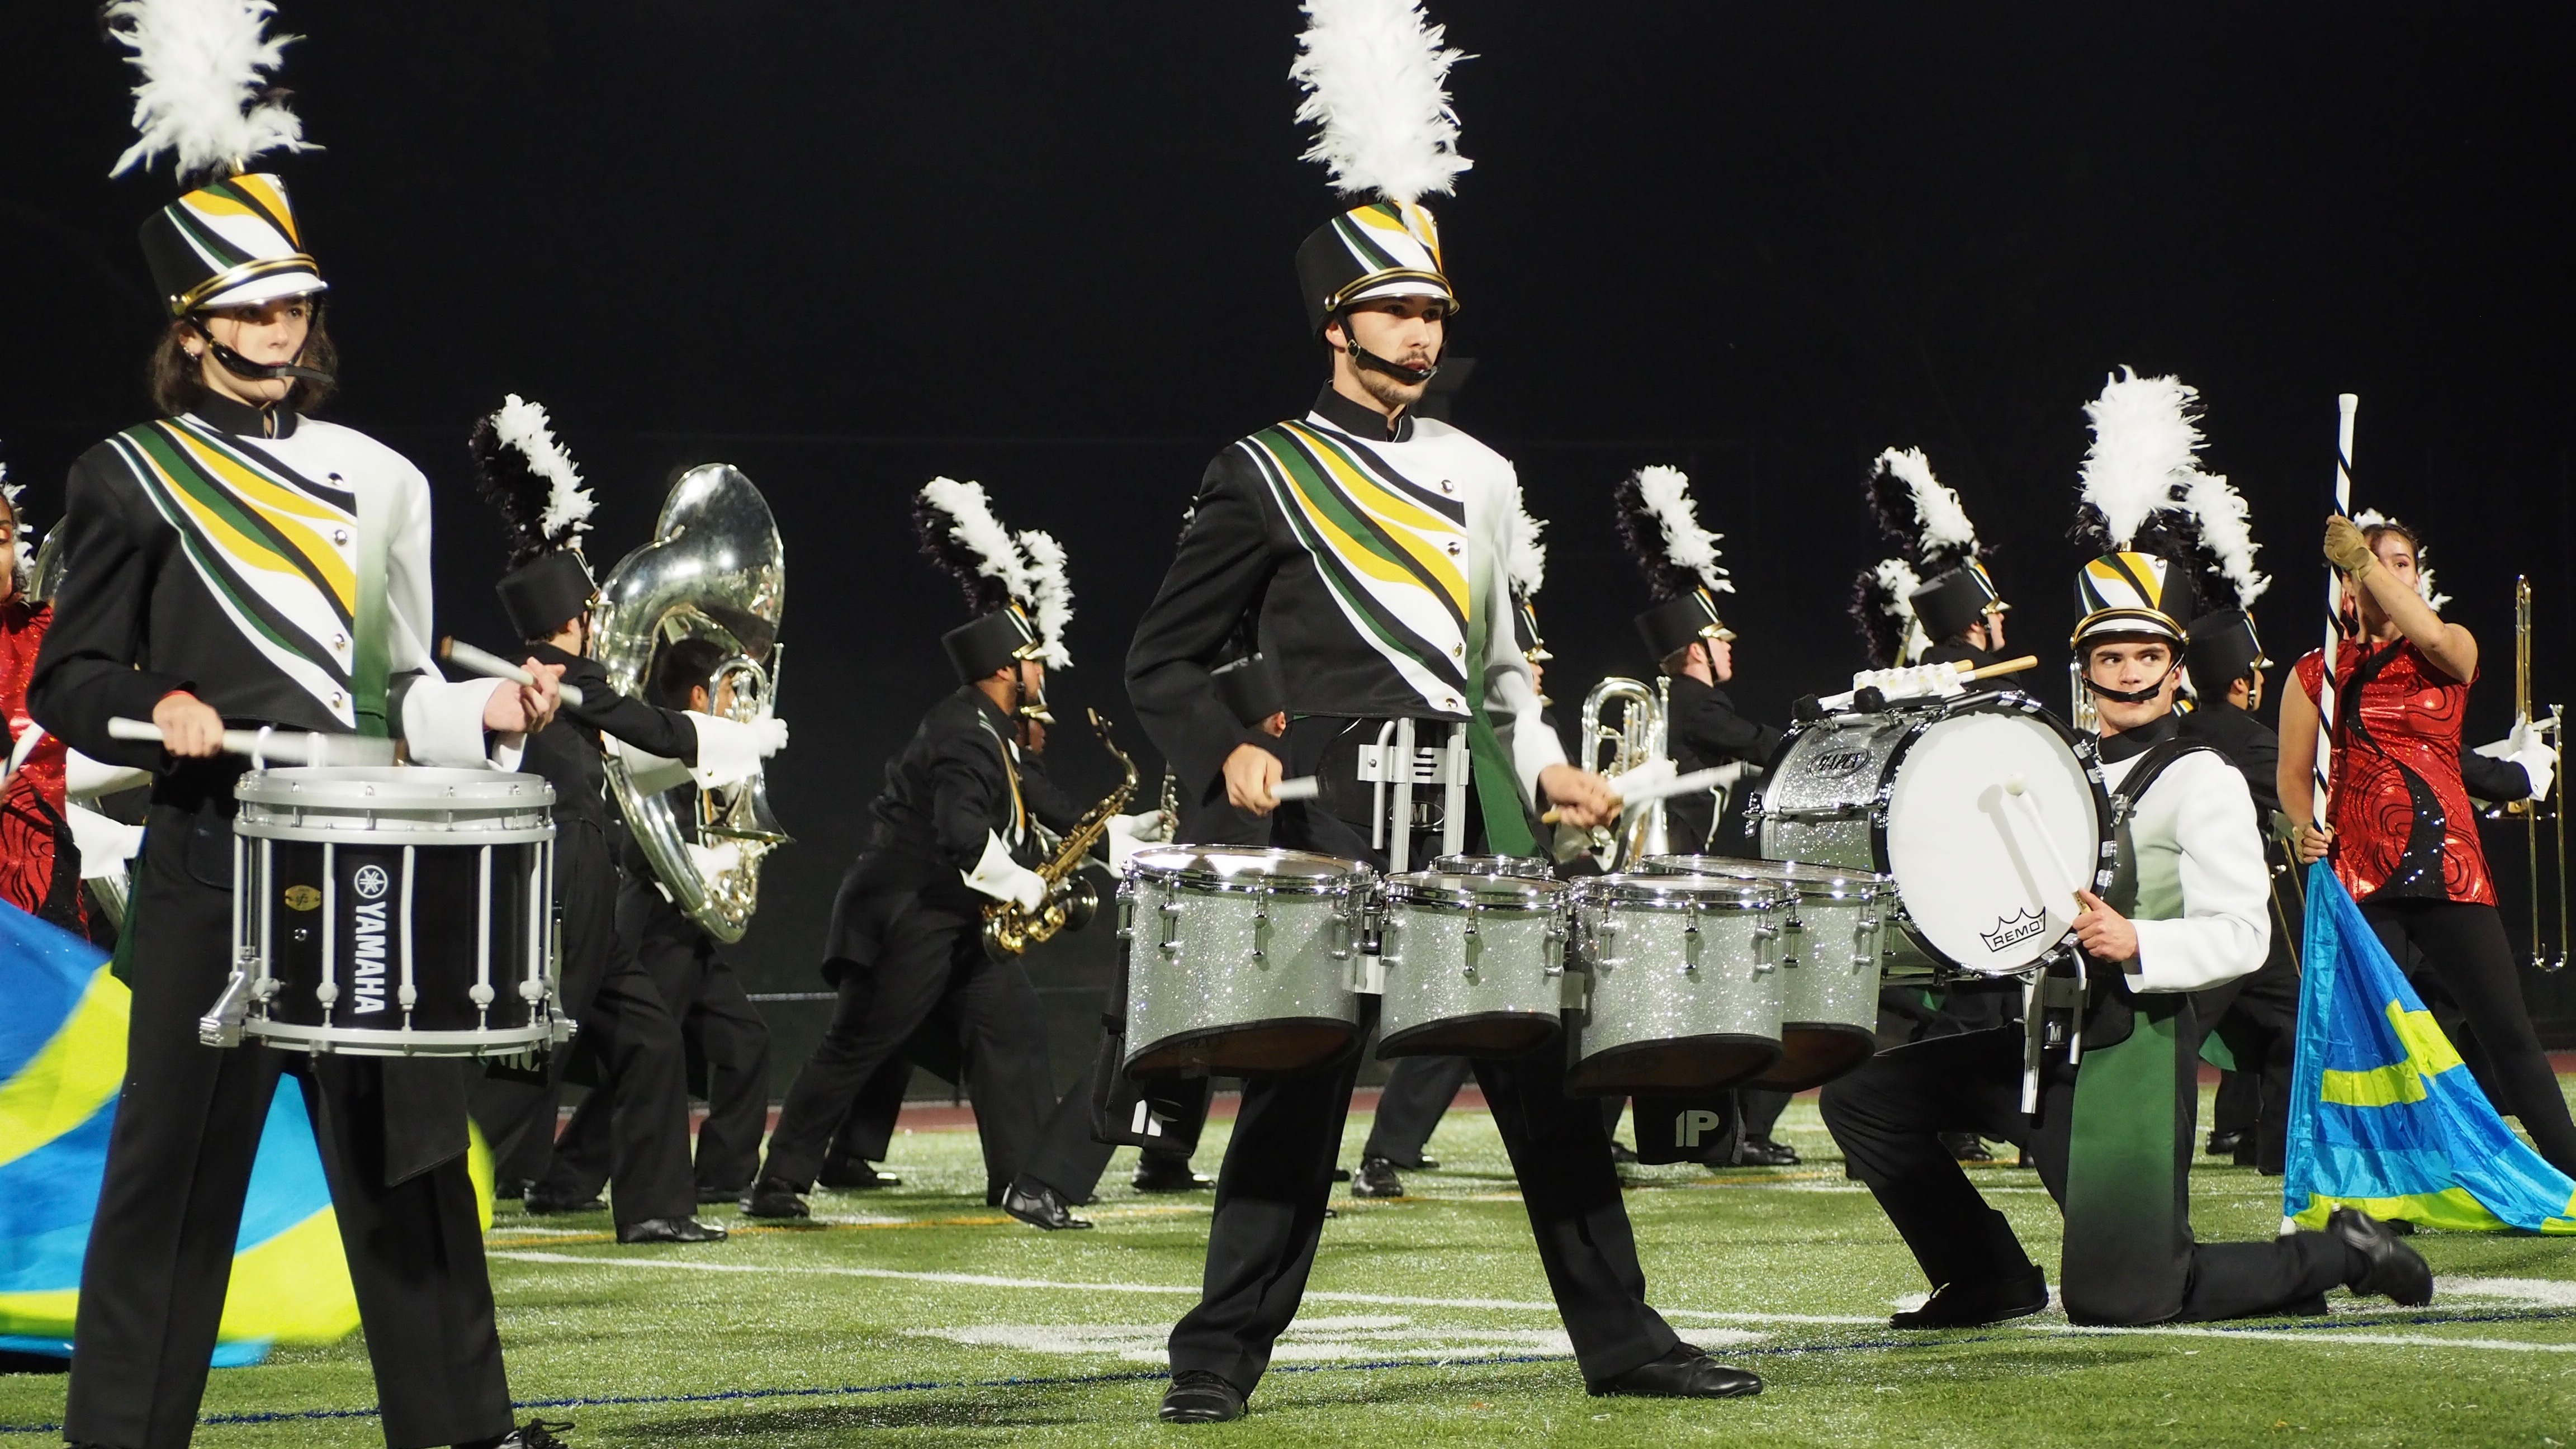 Wakefield Marching Band